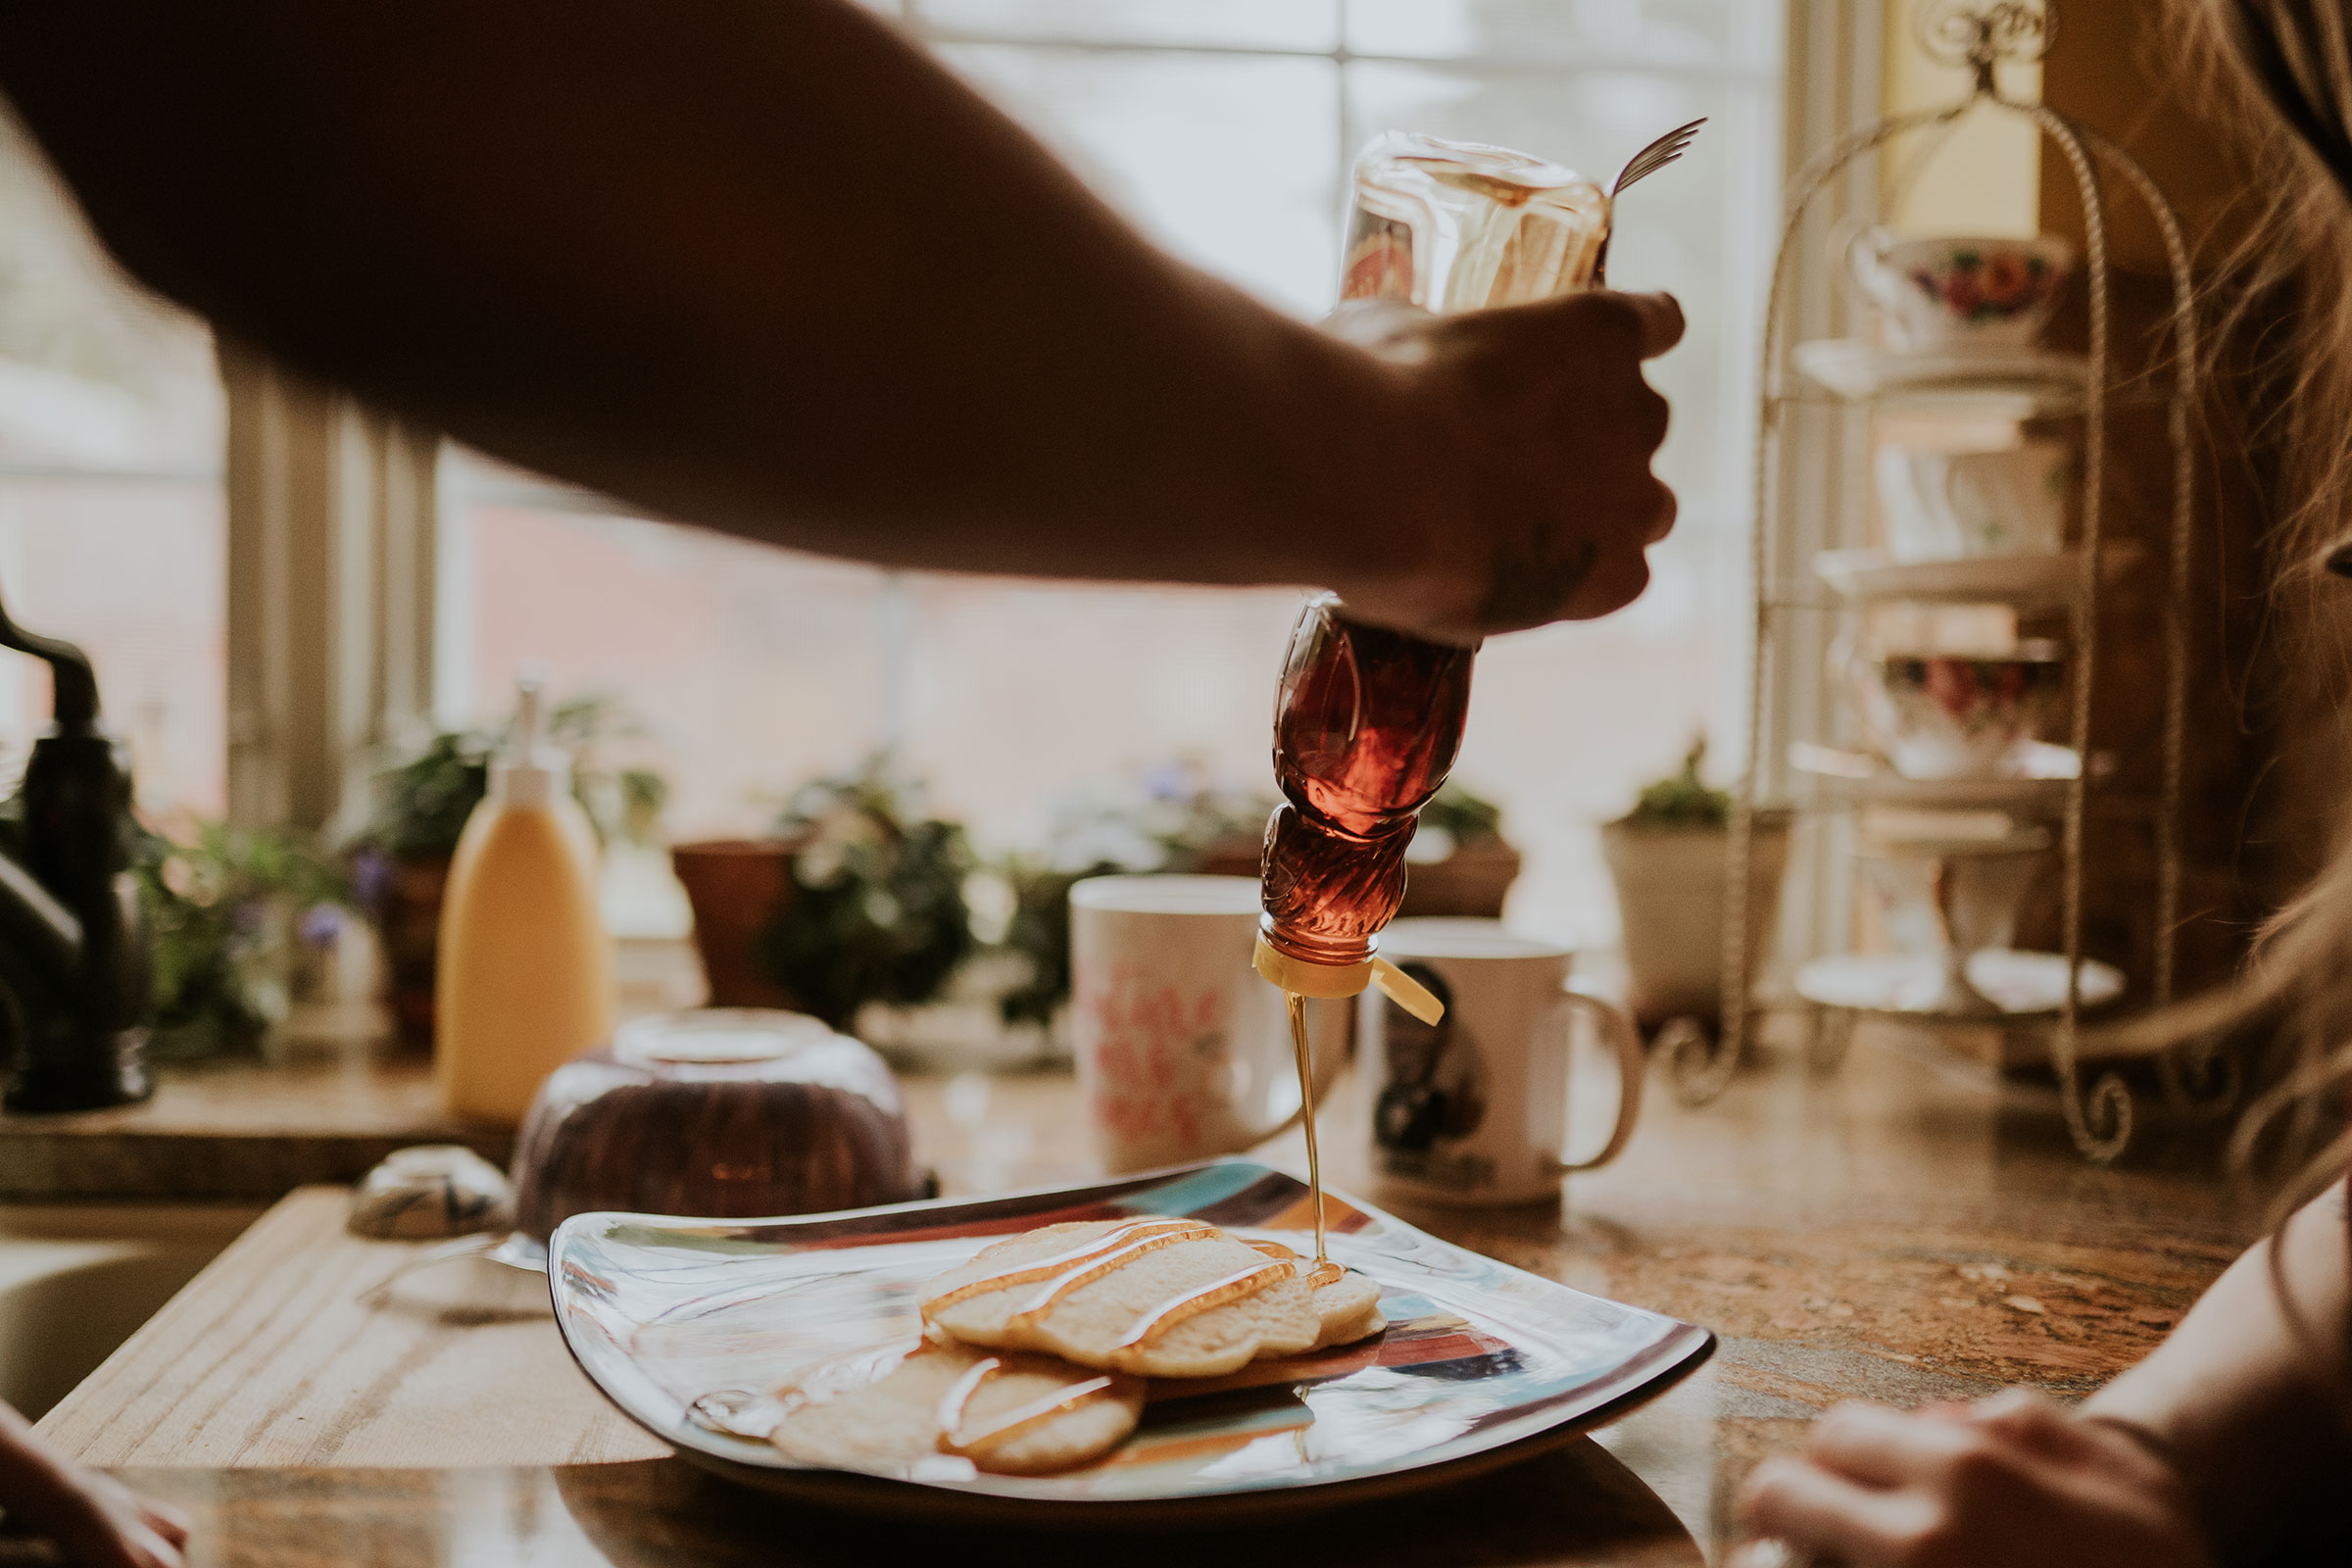 detail-shot-of-syrup-getting-poured-on-pancakes-engagement-desmoines-iowa-raelyn-ramey-photography.jpg